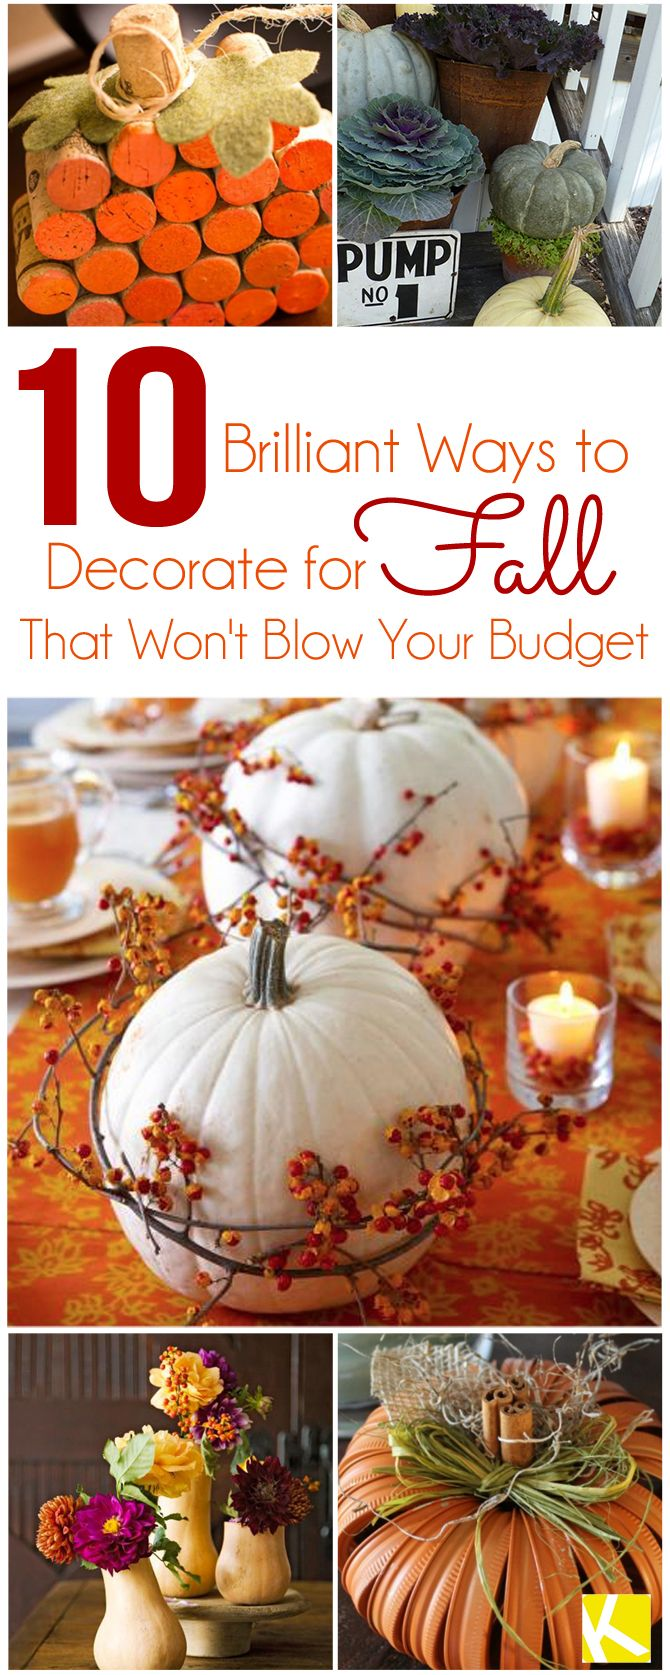 September Decorating Ideas Mesmerizing 10 Brilliant Ways To Decorate For Fall That Won't Blow Your Budget . Inspiration